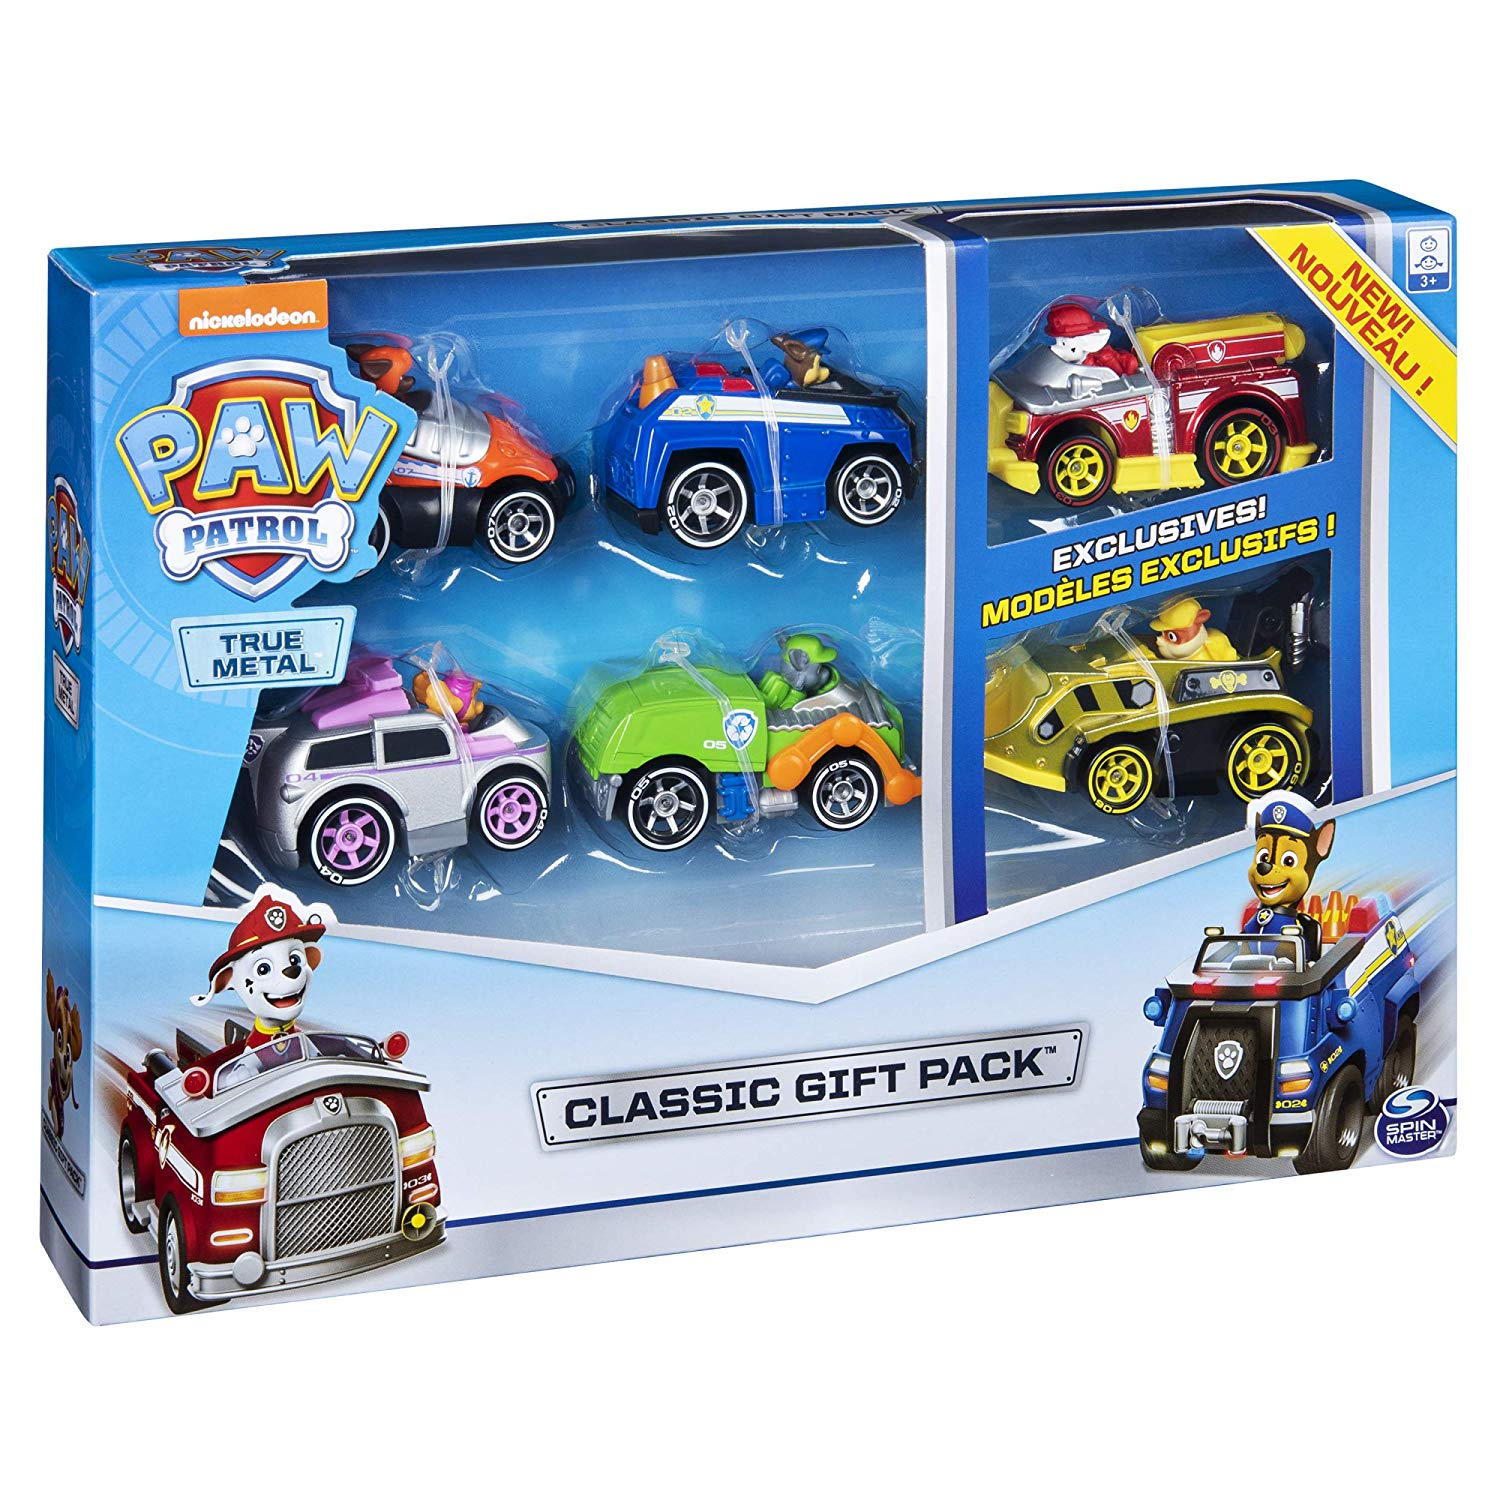 Paw Patrol, True Metal Classic Gift Pack of 6 Collectible DIE-CAST Vehicles buy it now